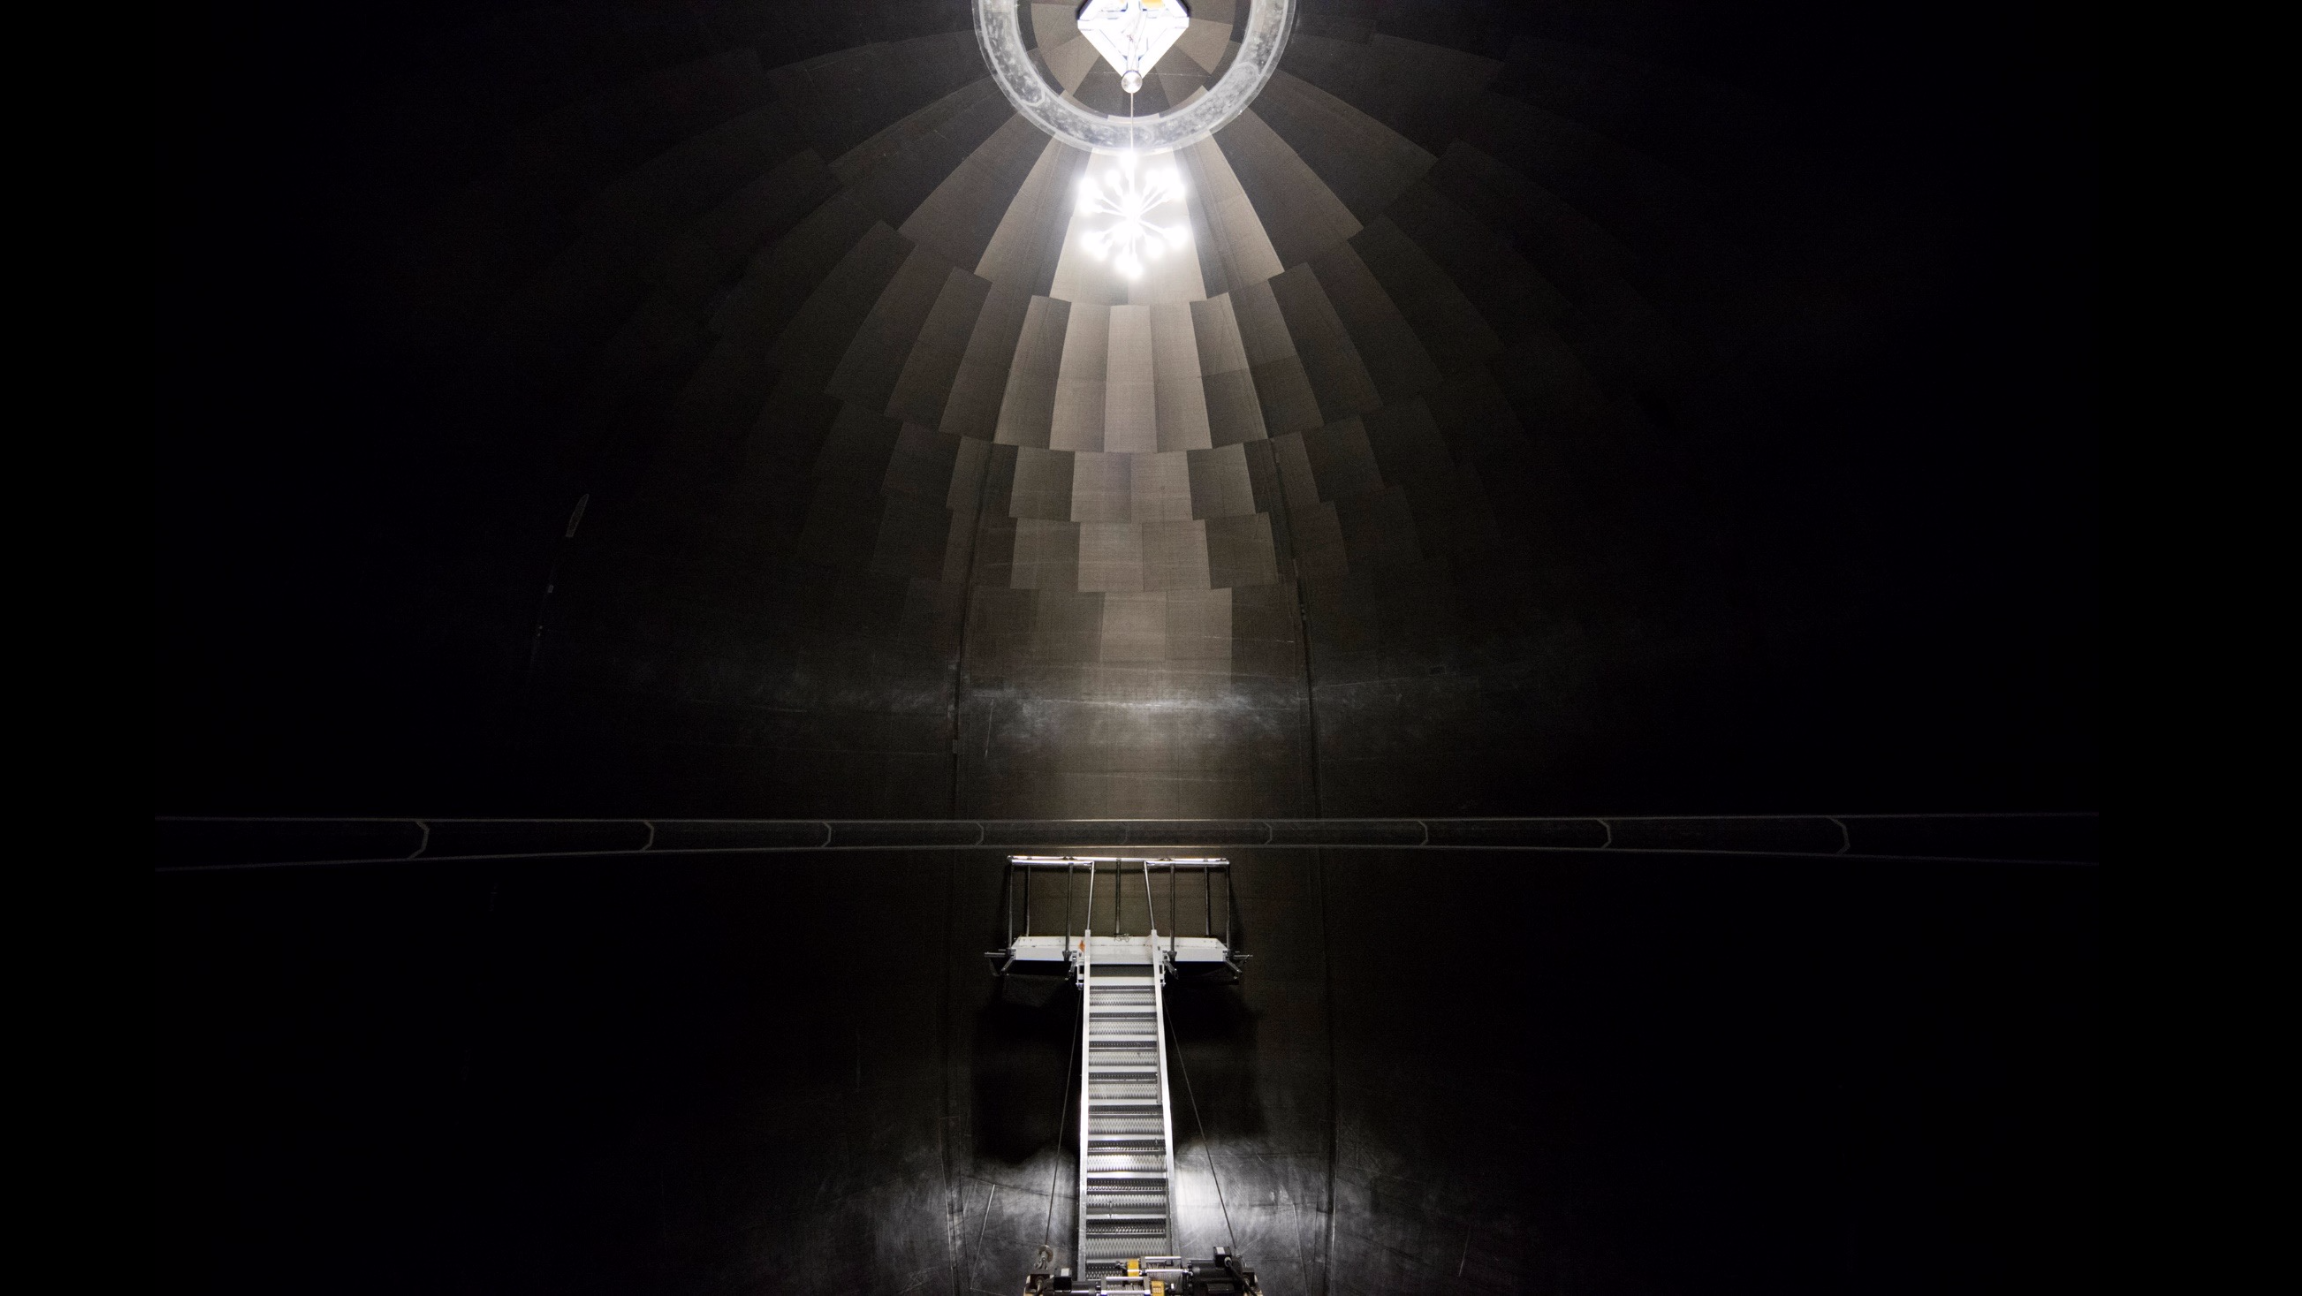 An internal view of a prototype carbon-fiber fuel tank in development for SpaceX's Mars-bound Interplanetary Transportation System.